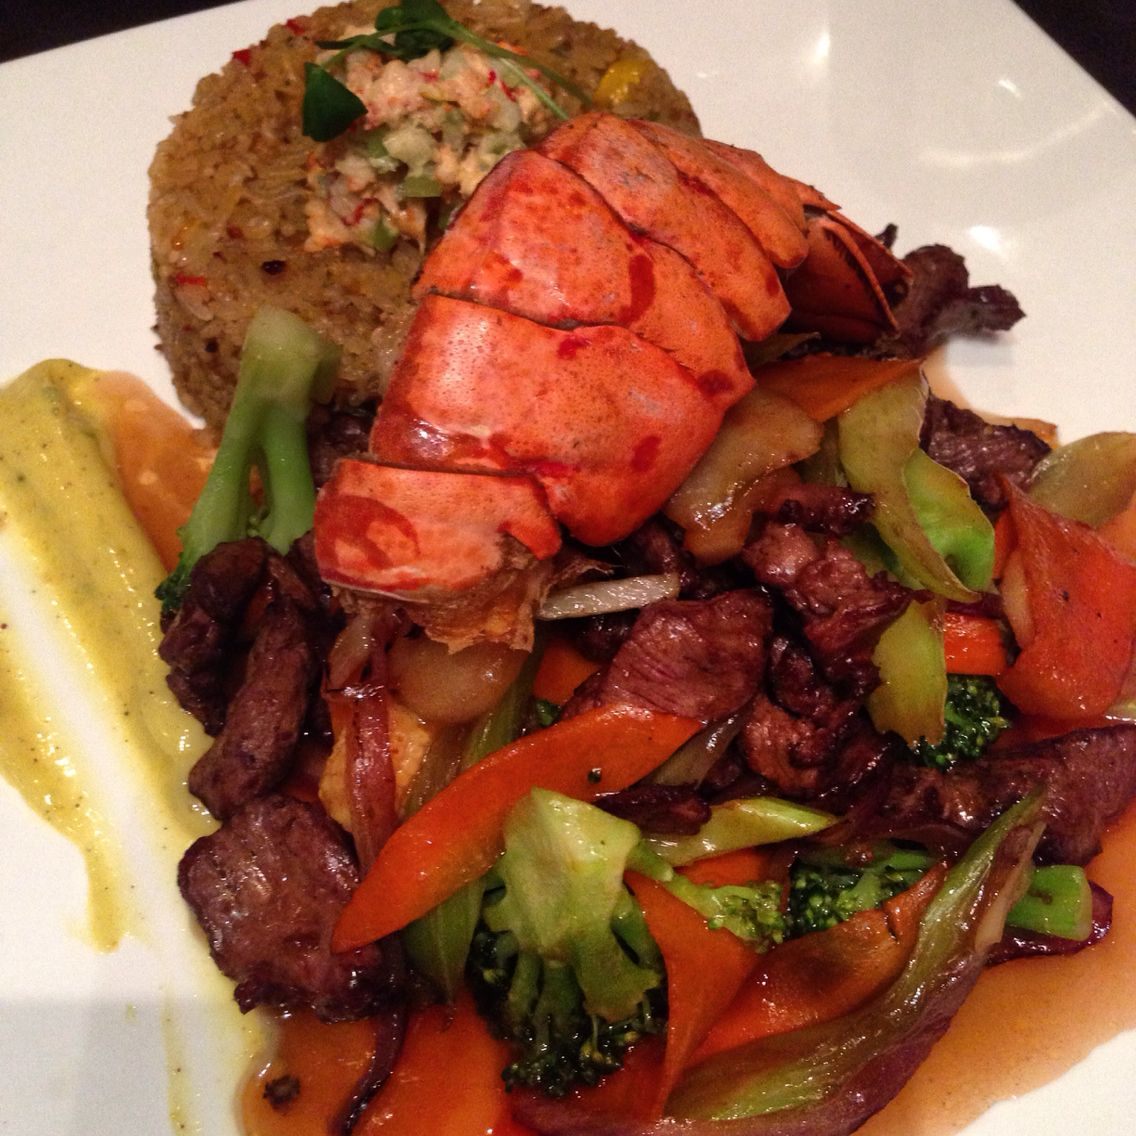 Steak And Lobster Stirfry Delicious Foodie Gives Two Thumbs Up To Lazia In Edmonton An Awesome Fusion Restaurant Steak And Lobster Foodie Eat